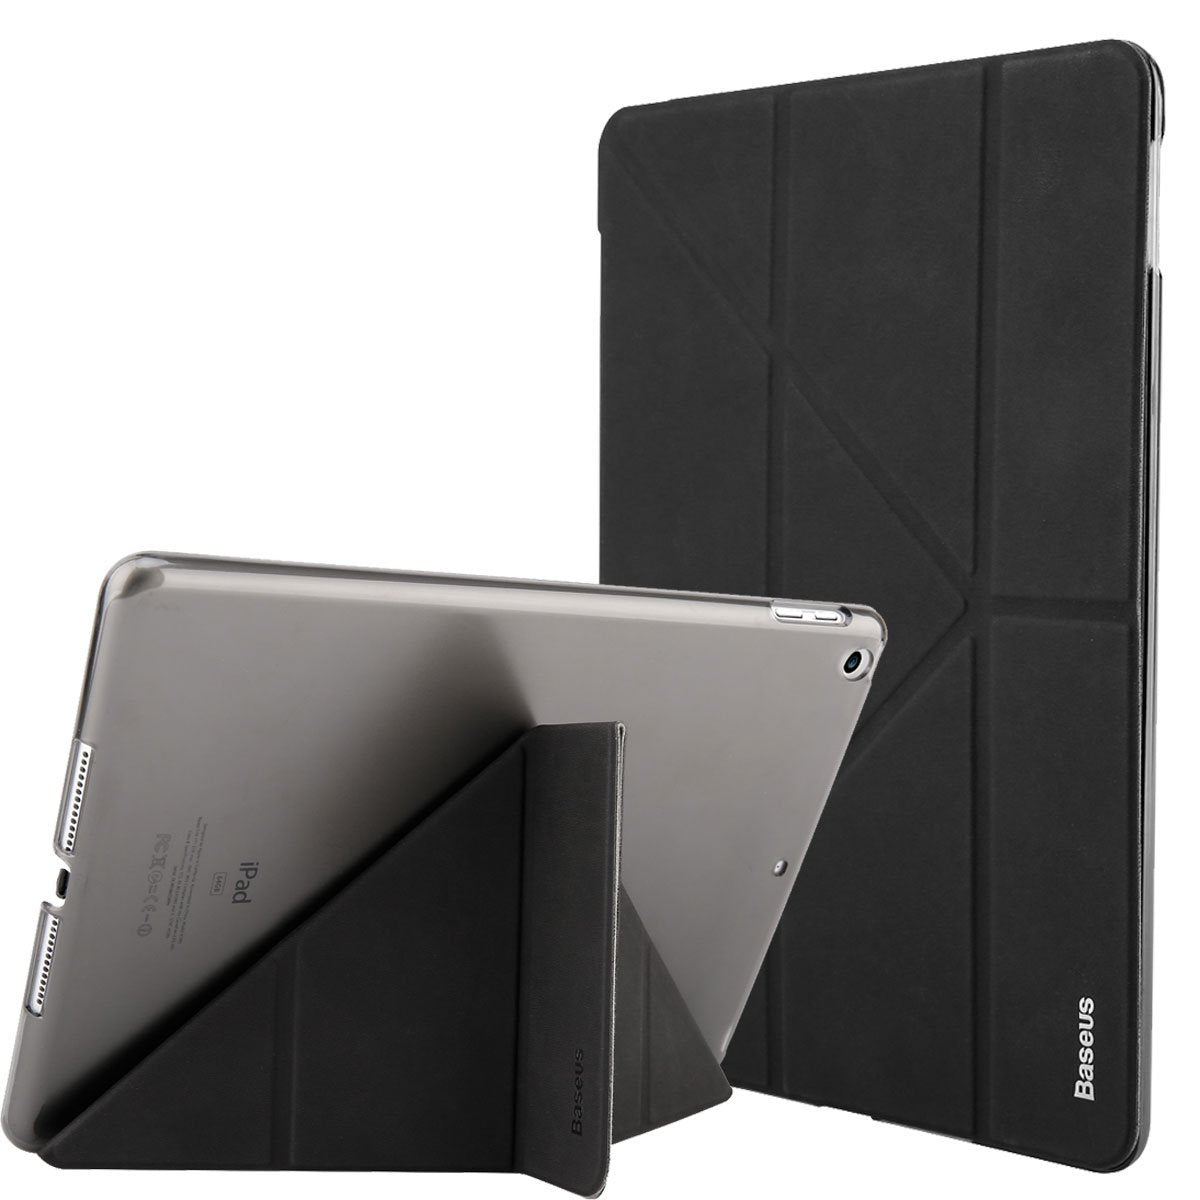 Baseus Apple iPad Pro 10.5 Inch Case Cover - Black | Monthly Madness